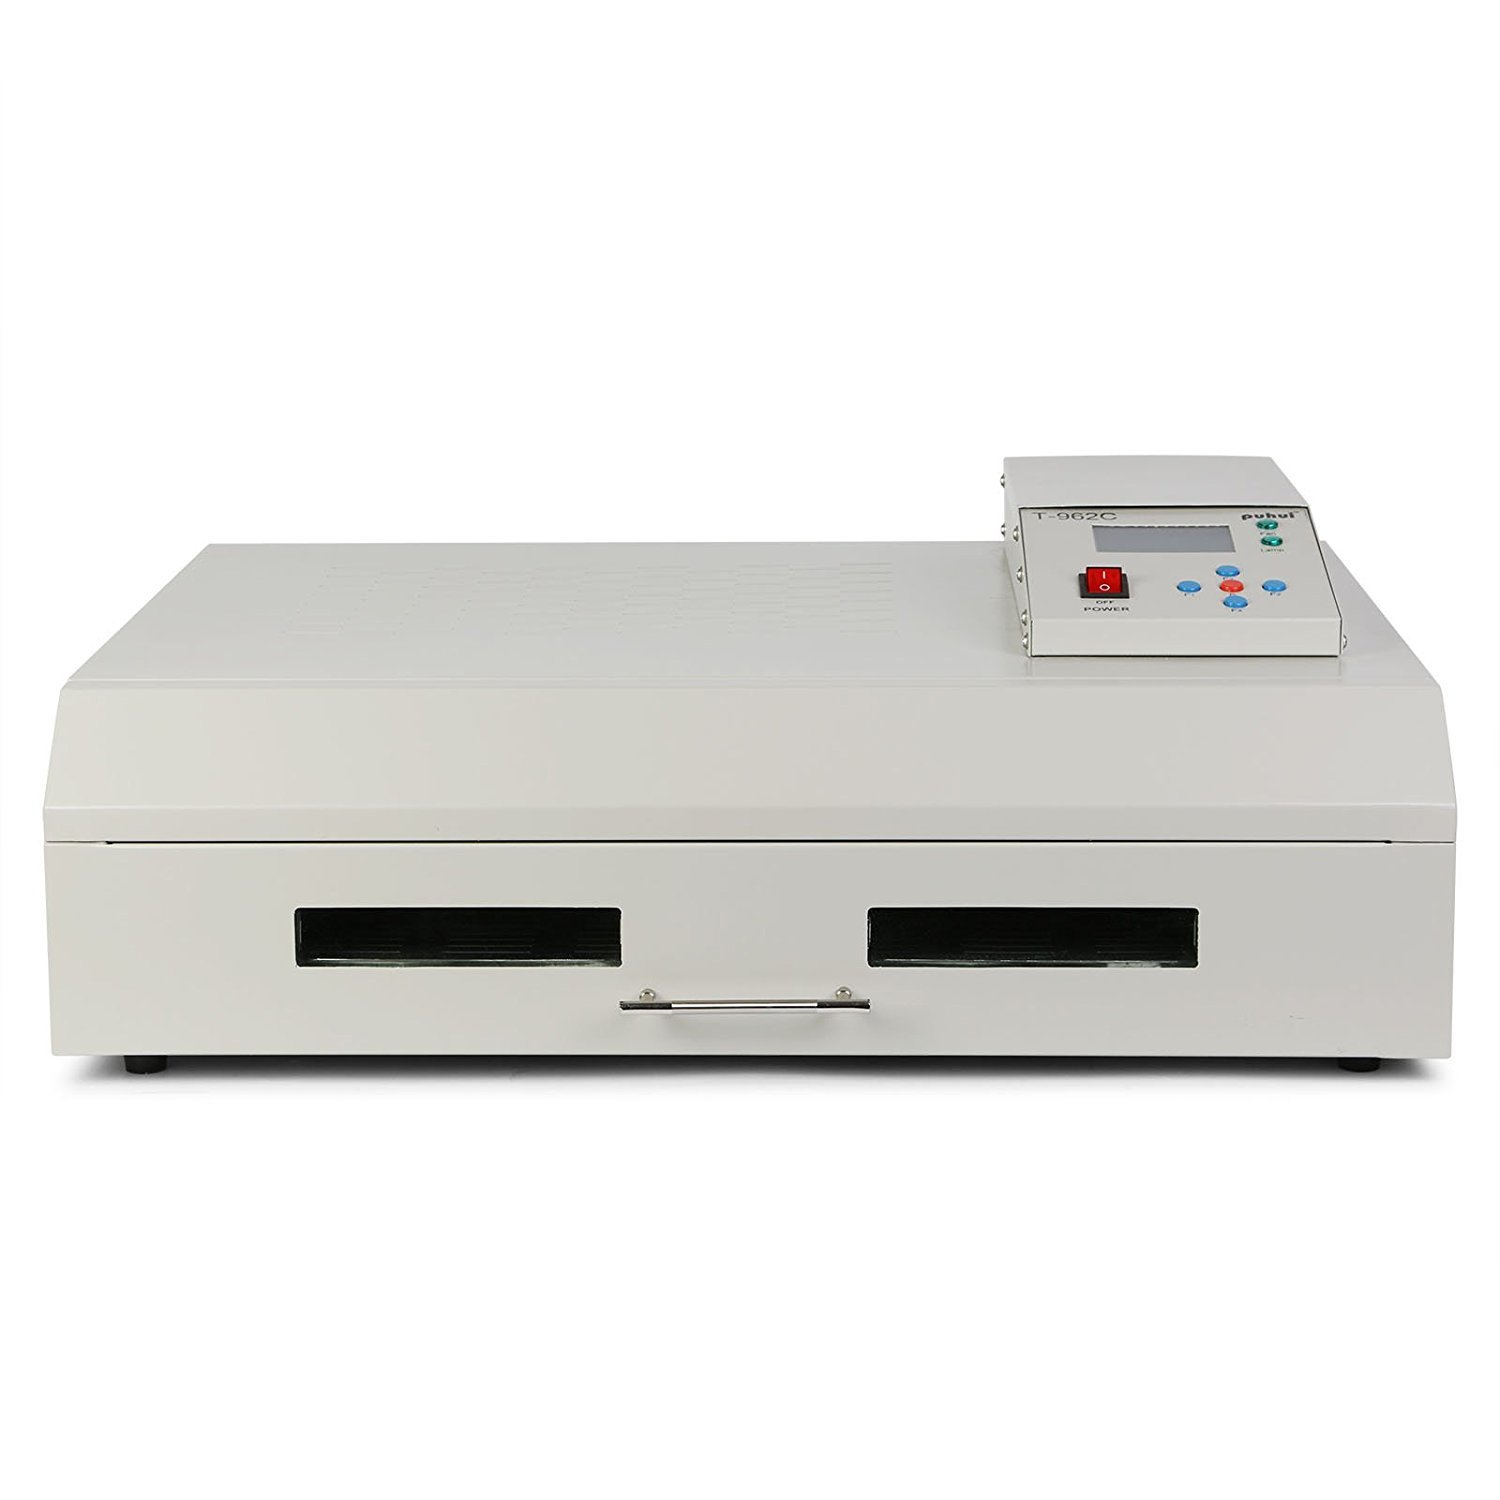 Popsport Infrared Reflow Oven T962C Reflow Soldering Machine 2800W 16 x 24 Inch Infrared IC Heater Reflow Oven Machine for Soldering Various SMD and BGA Components